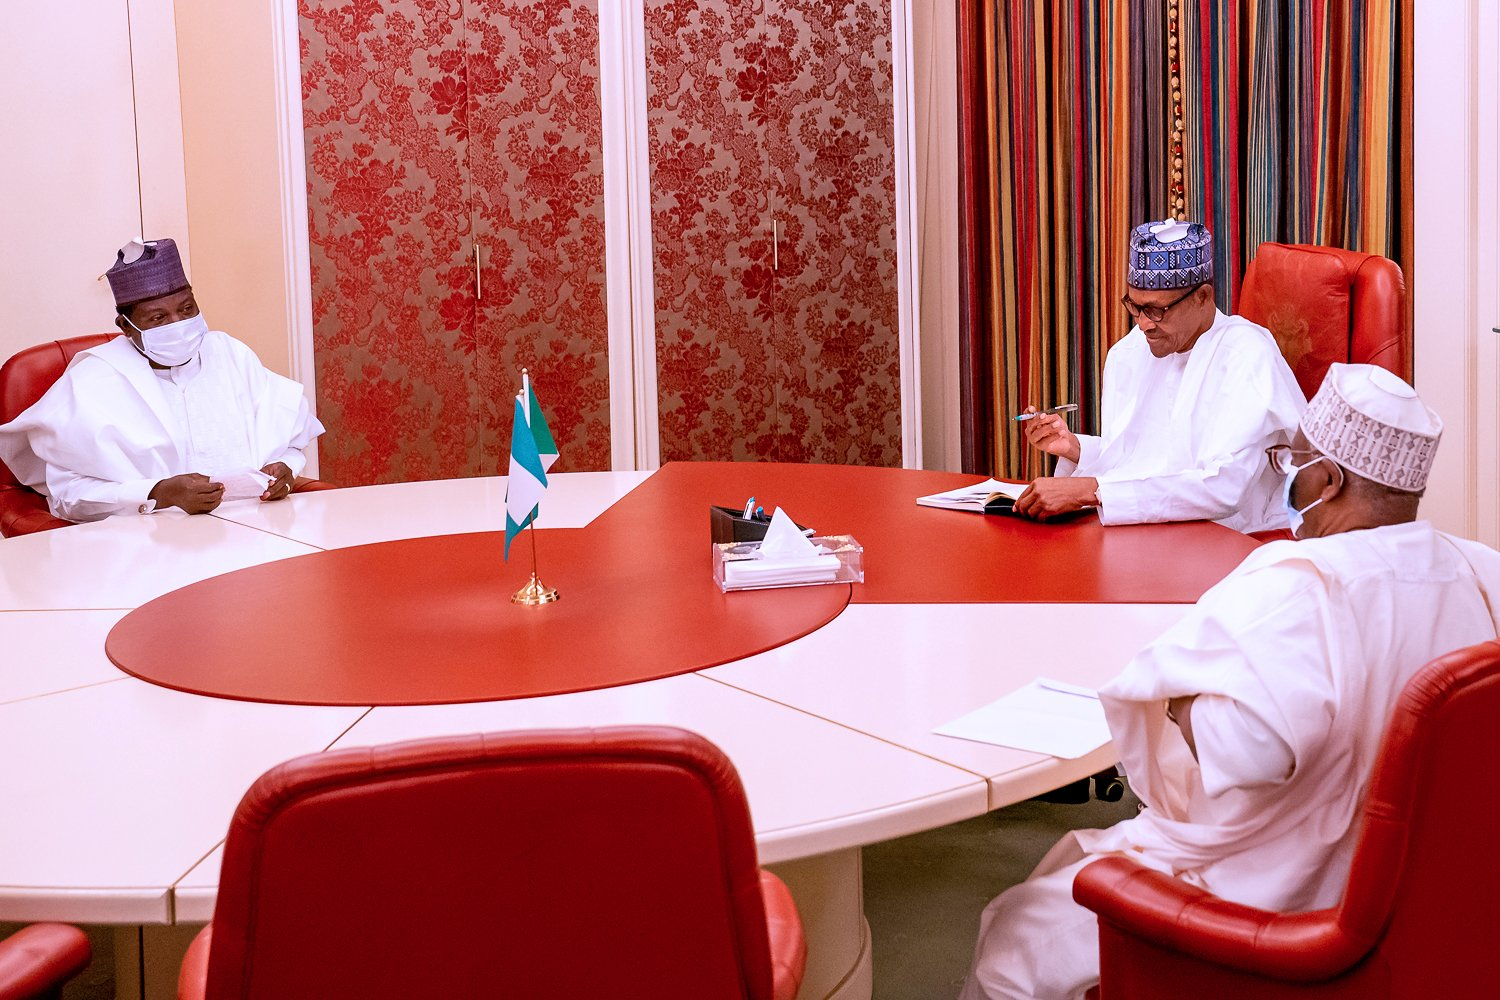 President Muhammadu Buhari receives in audience Plateau State Governor, H.E. Simon Lalong, at the State House, Abuja [PHOTO CREDIT: @NigeriaGov]